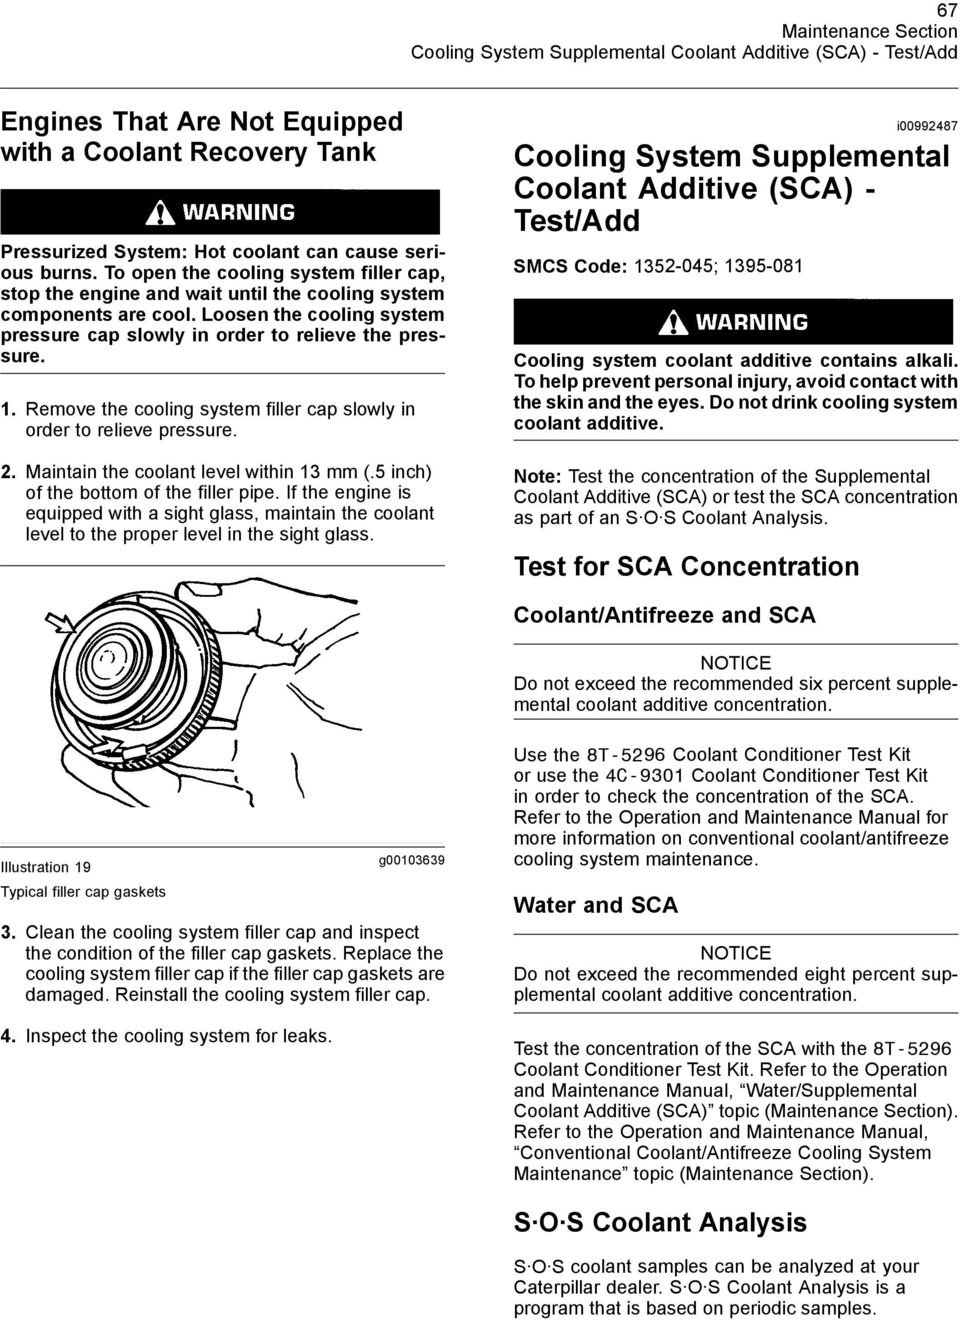 3208 Marine Engine Maintenance Intervals Pdf Sca Wiring Harness Remove The Cooling System Filler Cap Slowly In Order To Relieve Pressure 2 Maintain